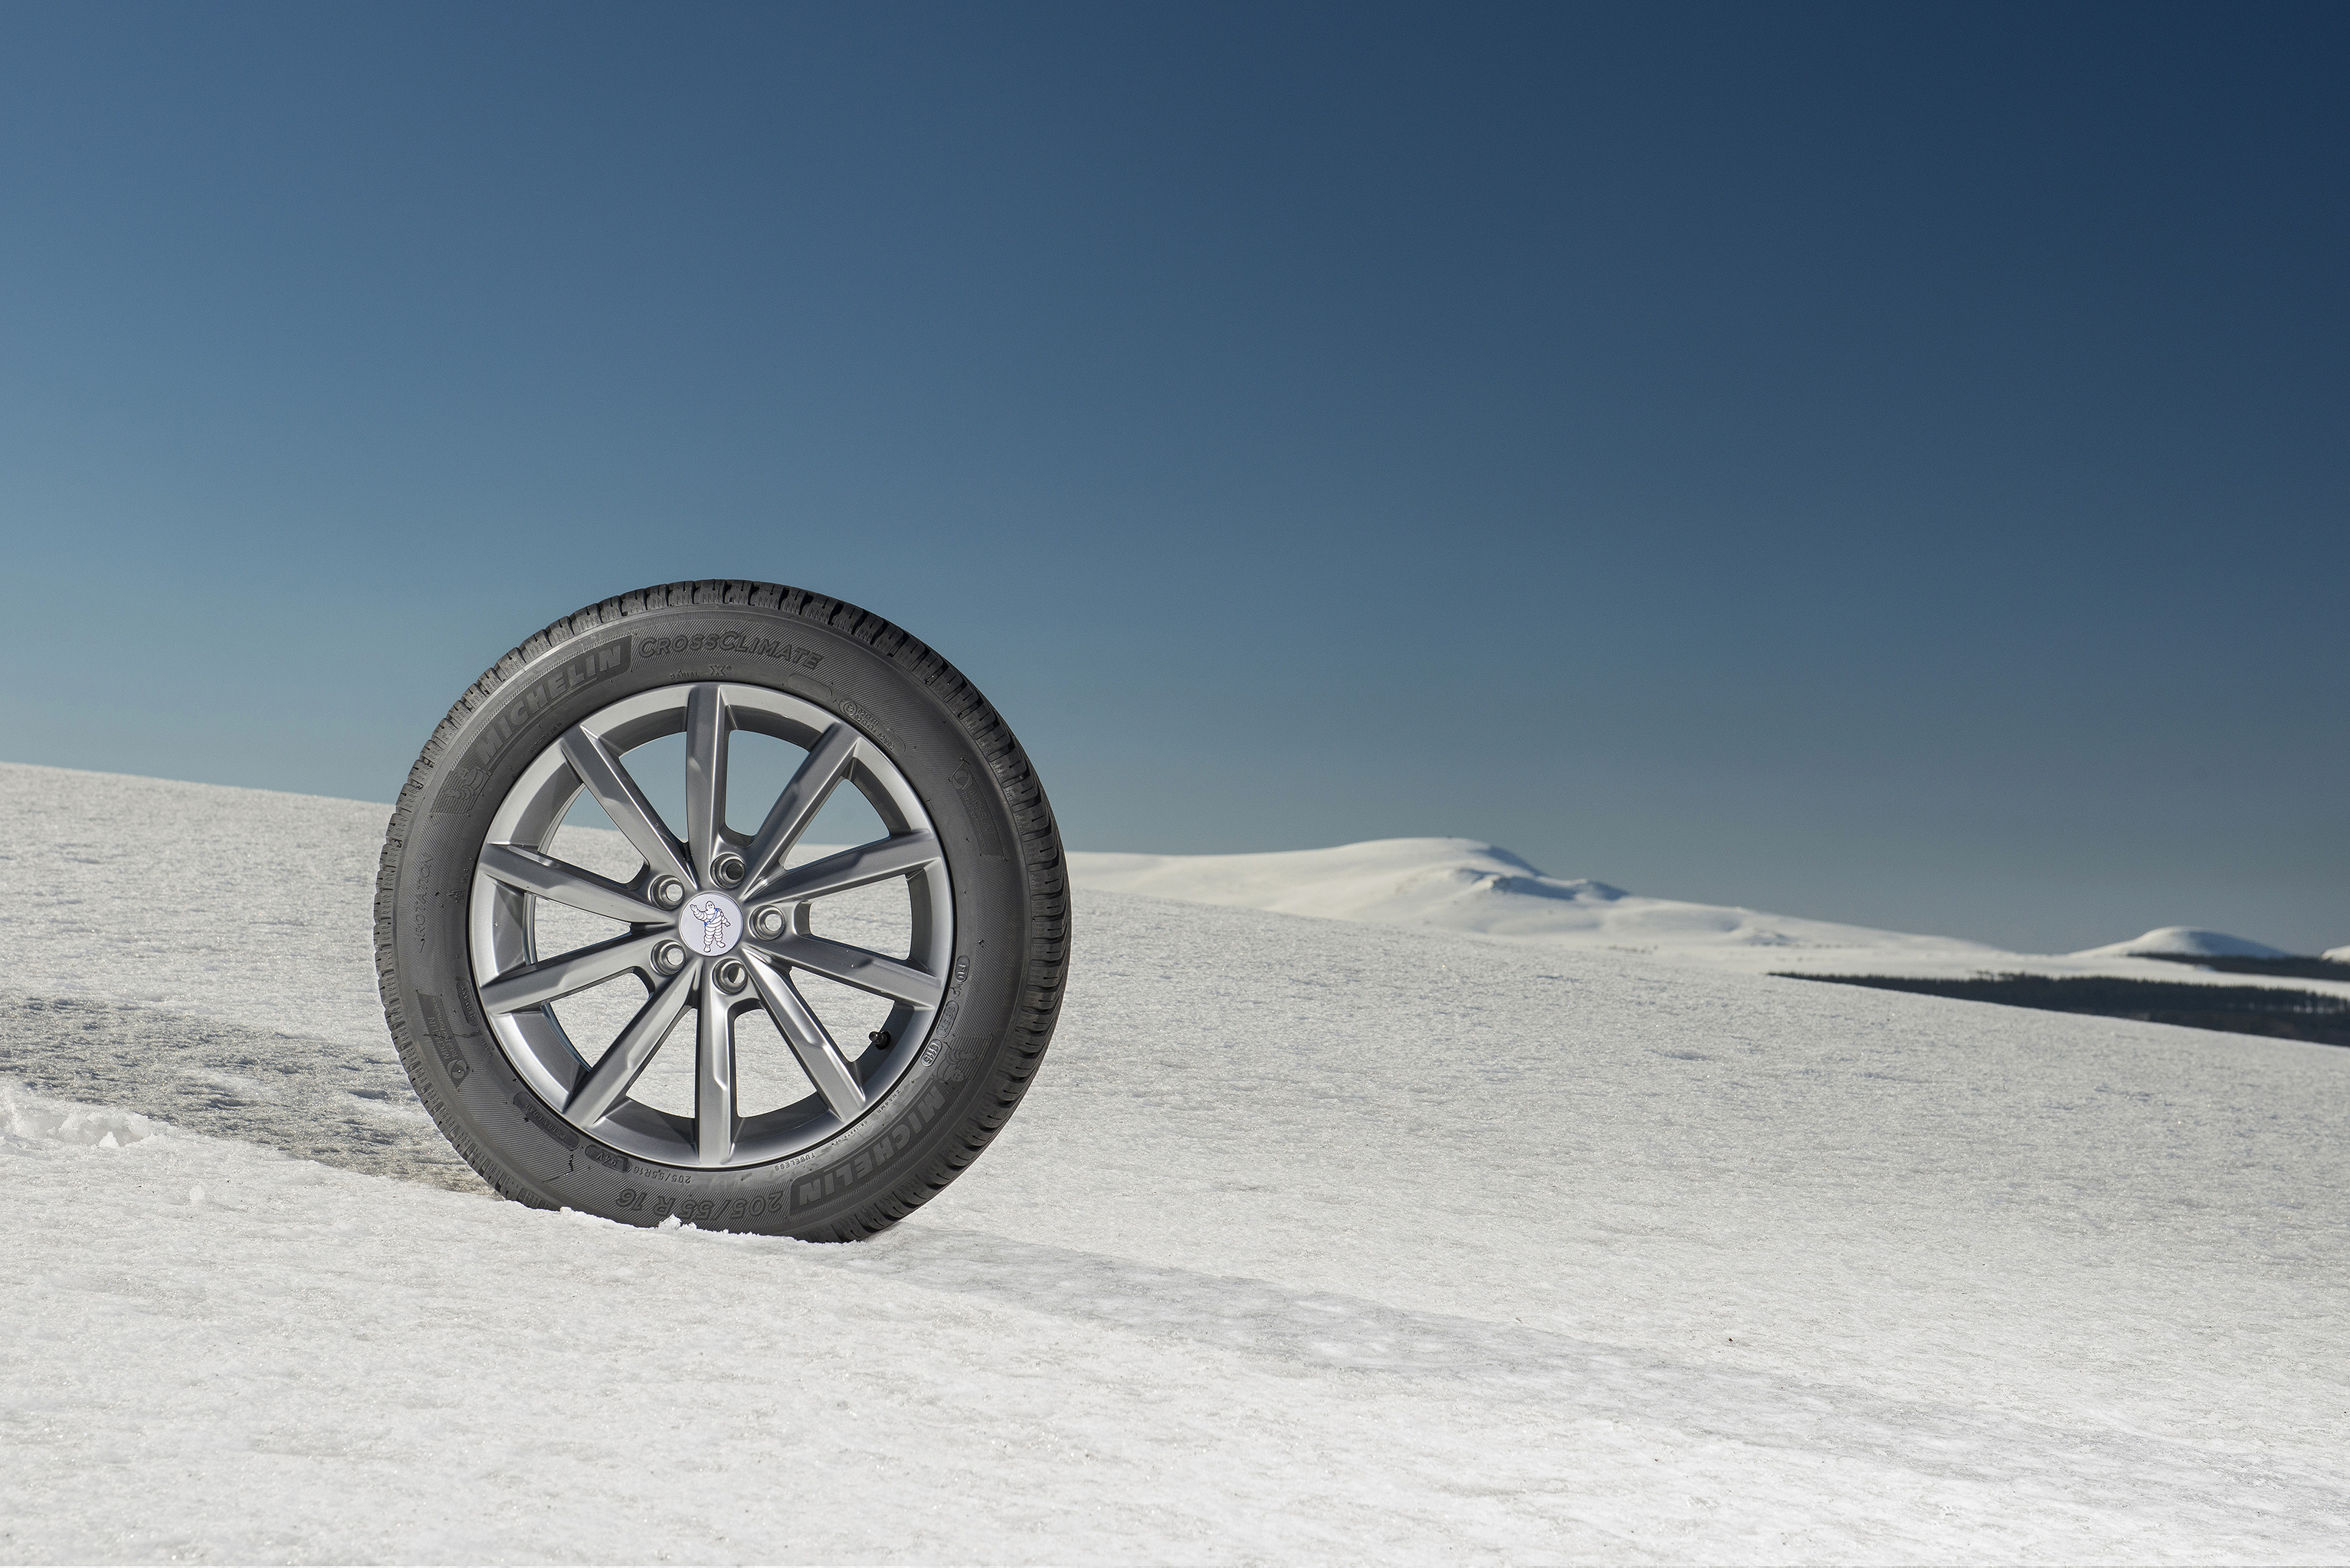 Arc_CROSSCLIMATE_03retmedium-jpg_articleId_10-6.jpg